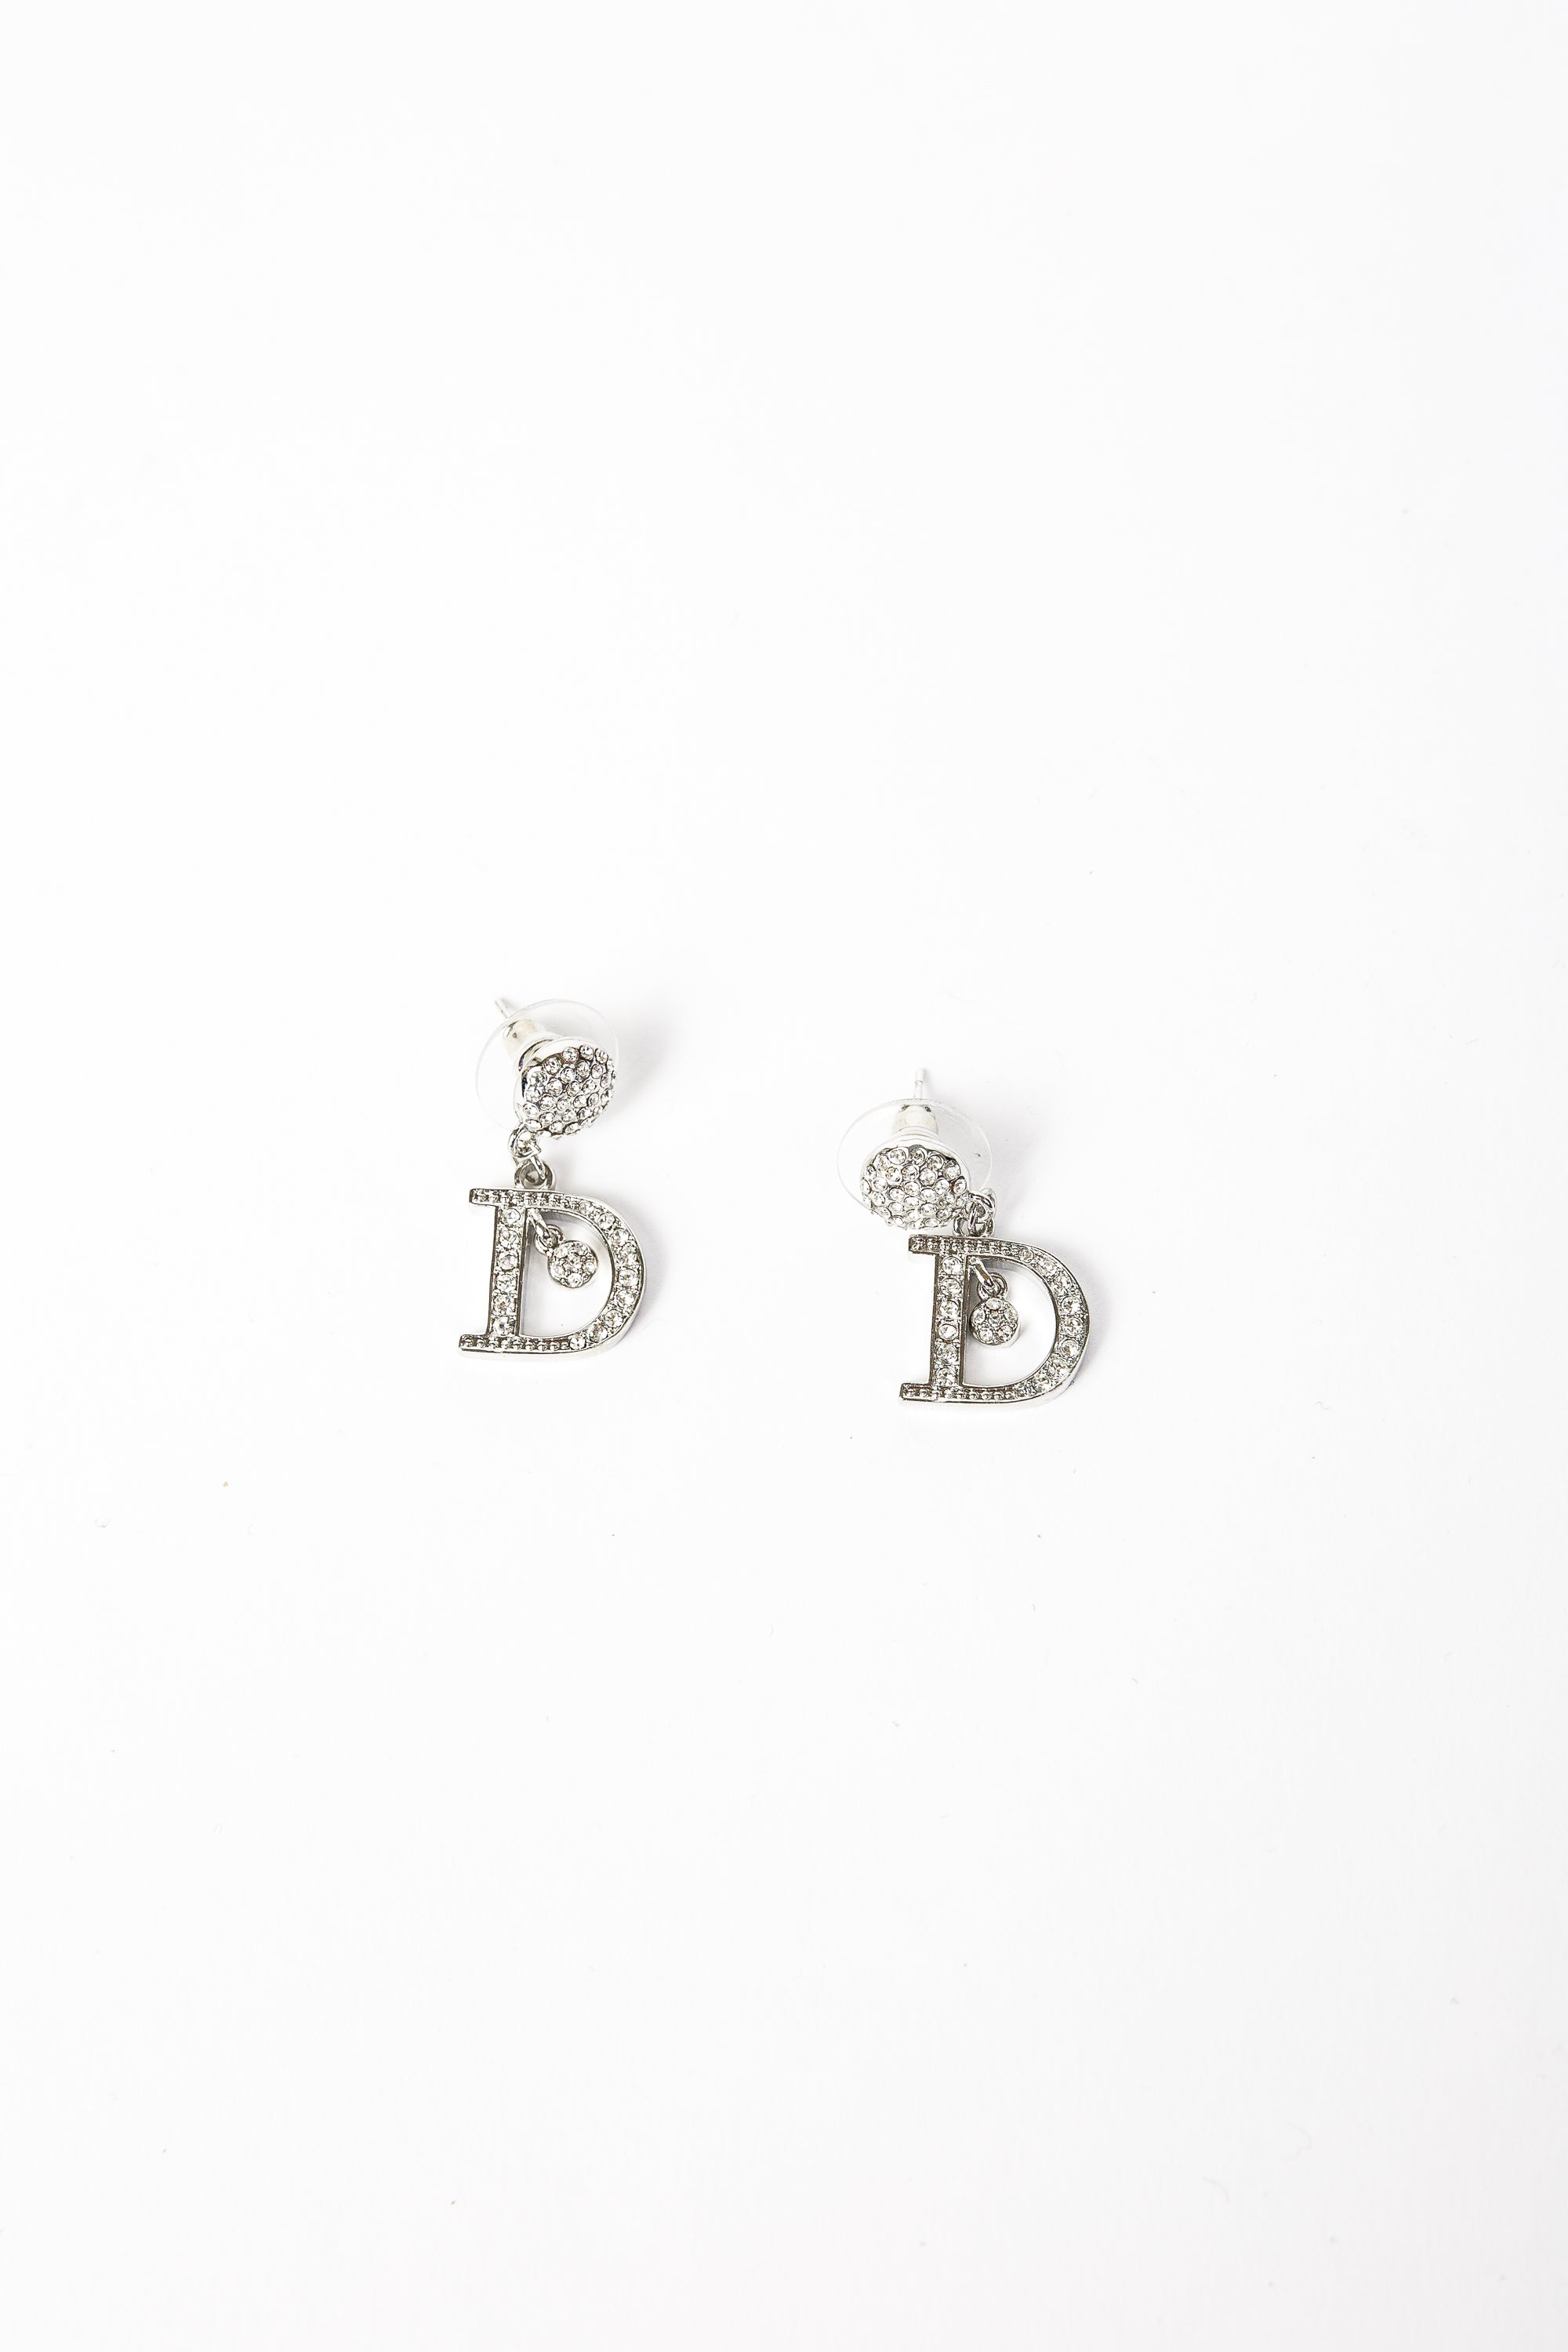 Dior Initial Earrings